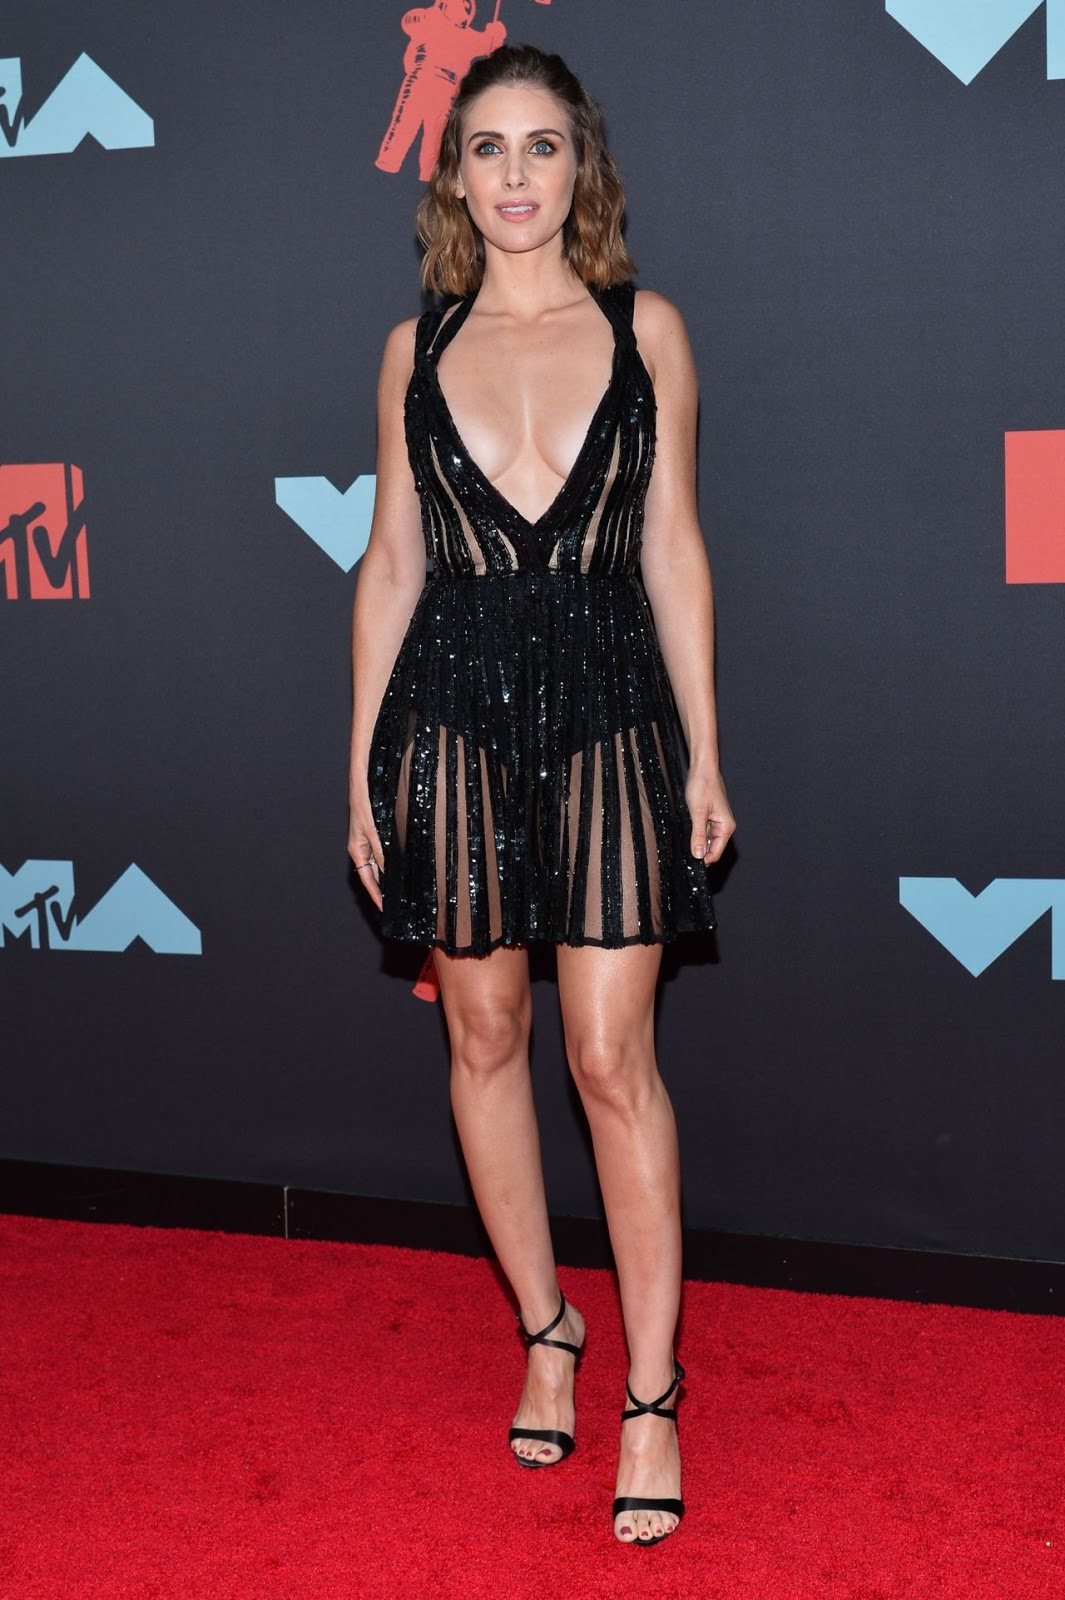 Alison Brie bares impressive cleavage at the 2019 MTV VMAs